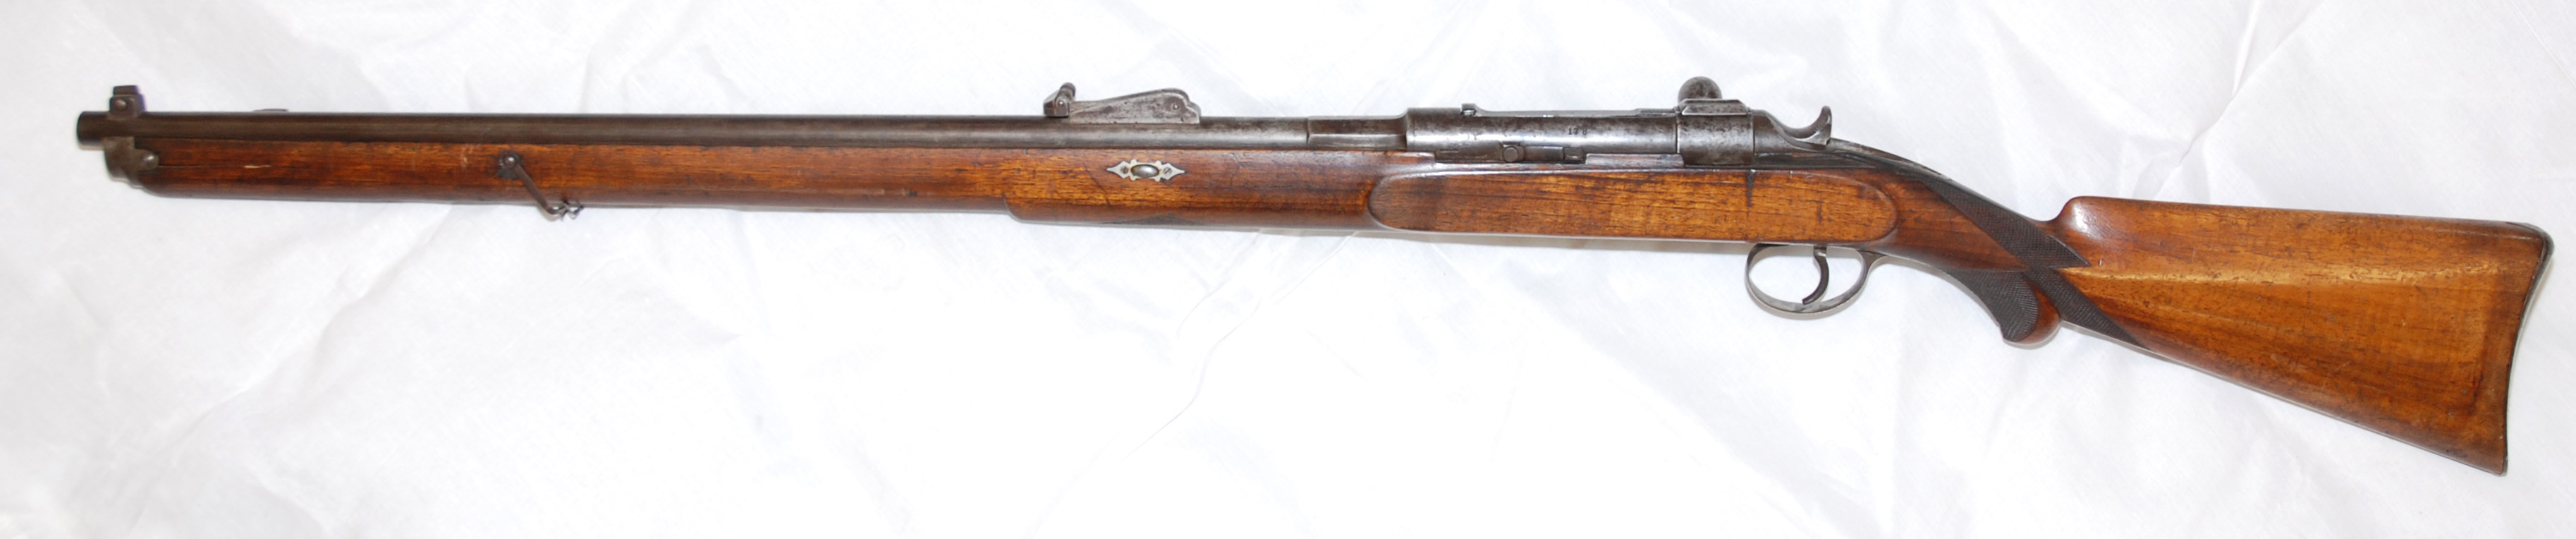 ./guns/rifle/bilder/Rifle-Kongsberg-Jarmann-M1884-Sivil-178-2.jpg